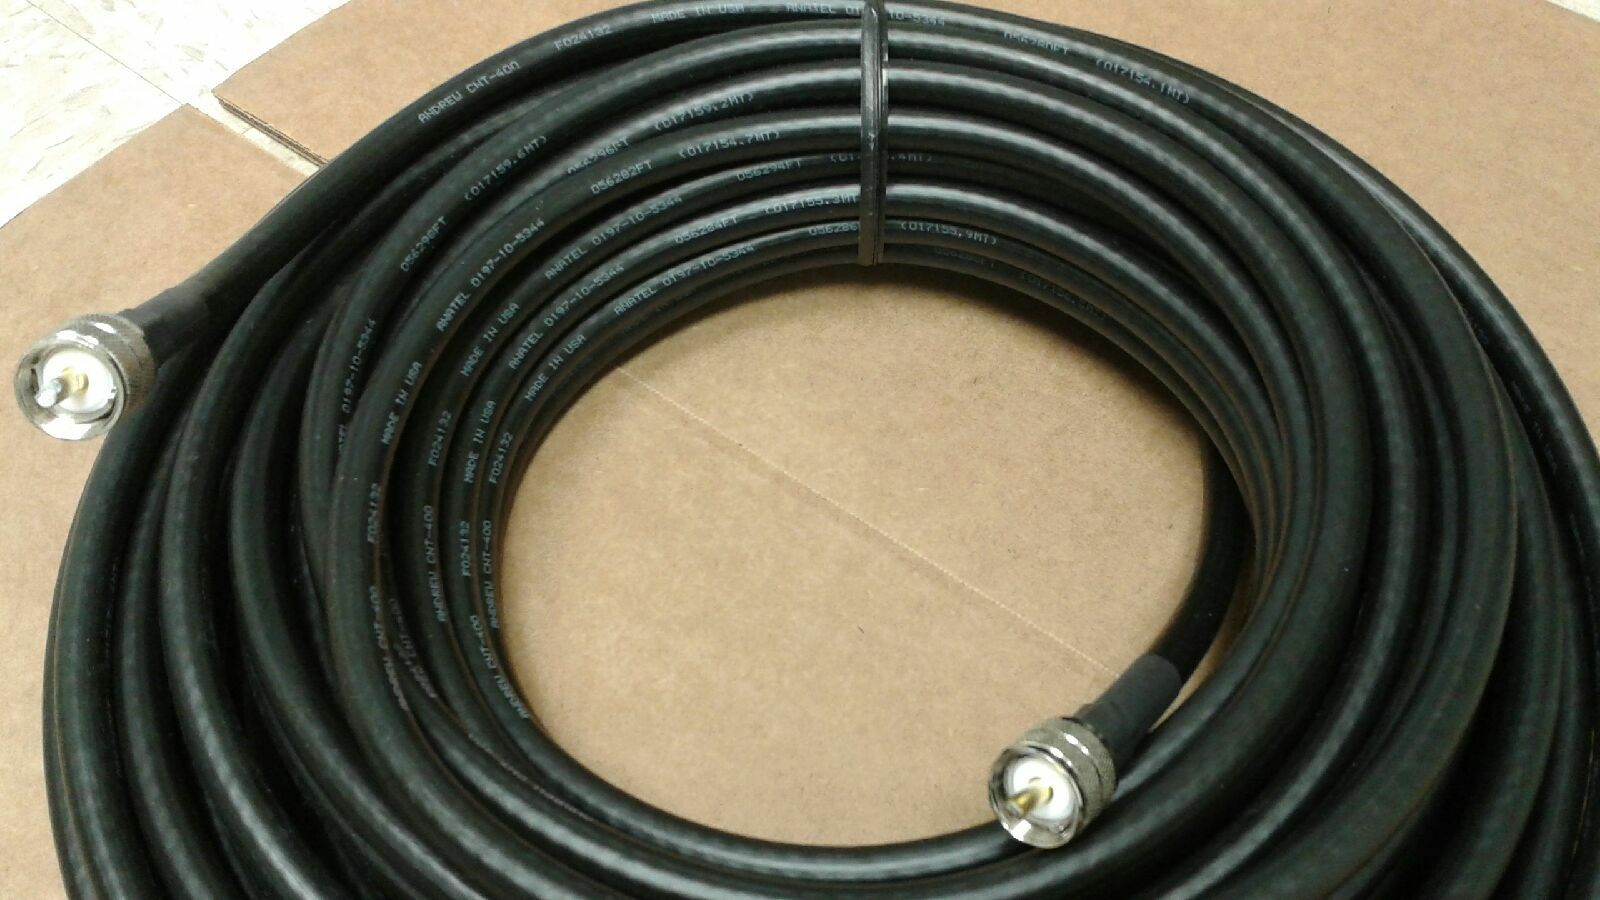 US MADE   LMR-400  200 FT  UHF/UHF male  PL259 COAX CABLE CB,HAM,SCANNER . Available Now for 210.00